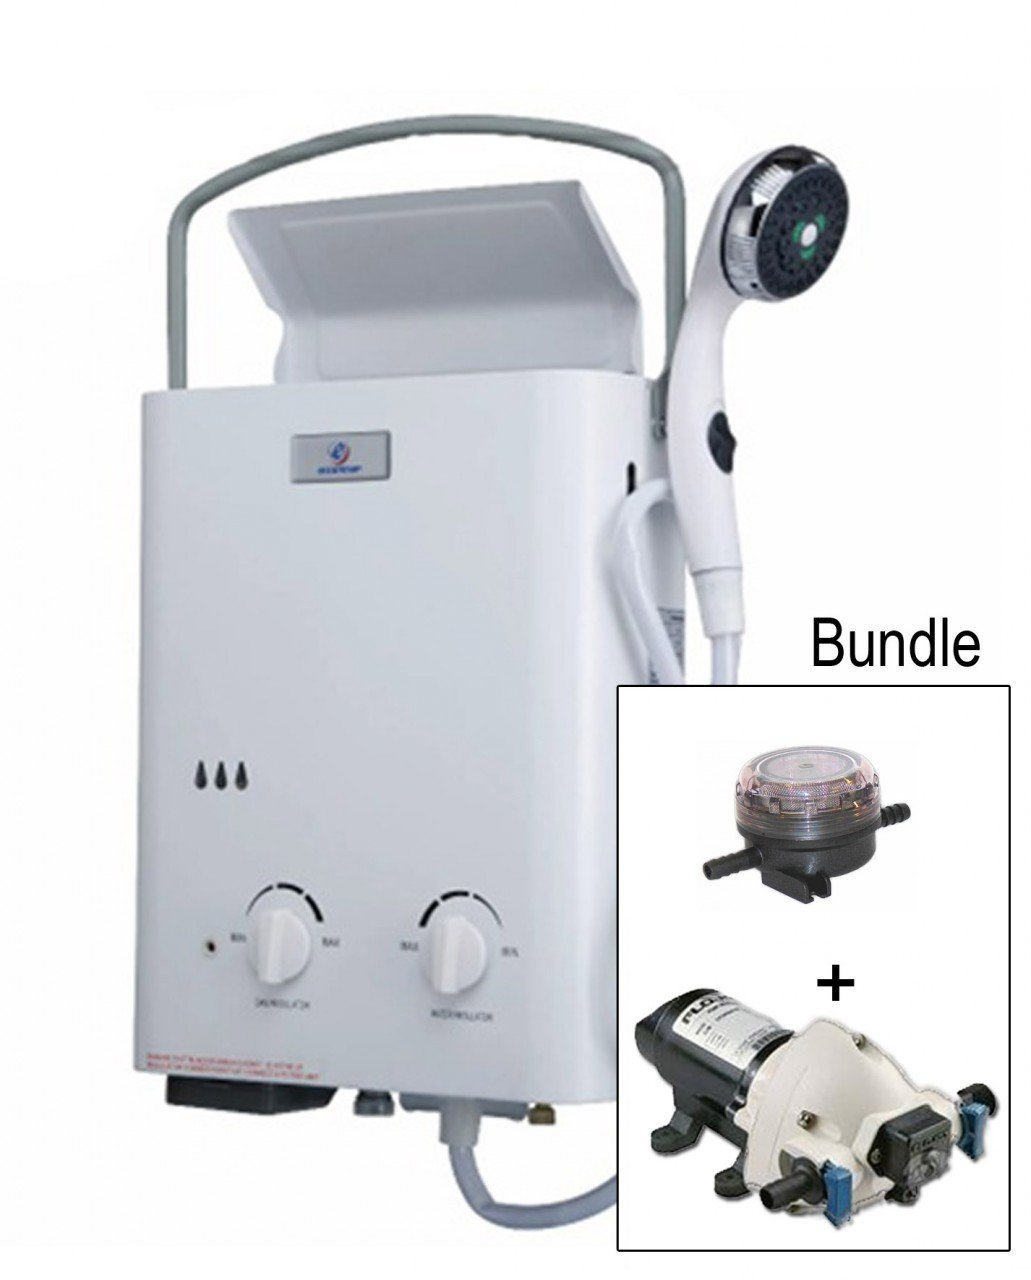 Eccotemp Systems L5 Pump/Strainer Bundle L5 Tankless Water Heater with Flojet Pump and Strainer